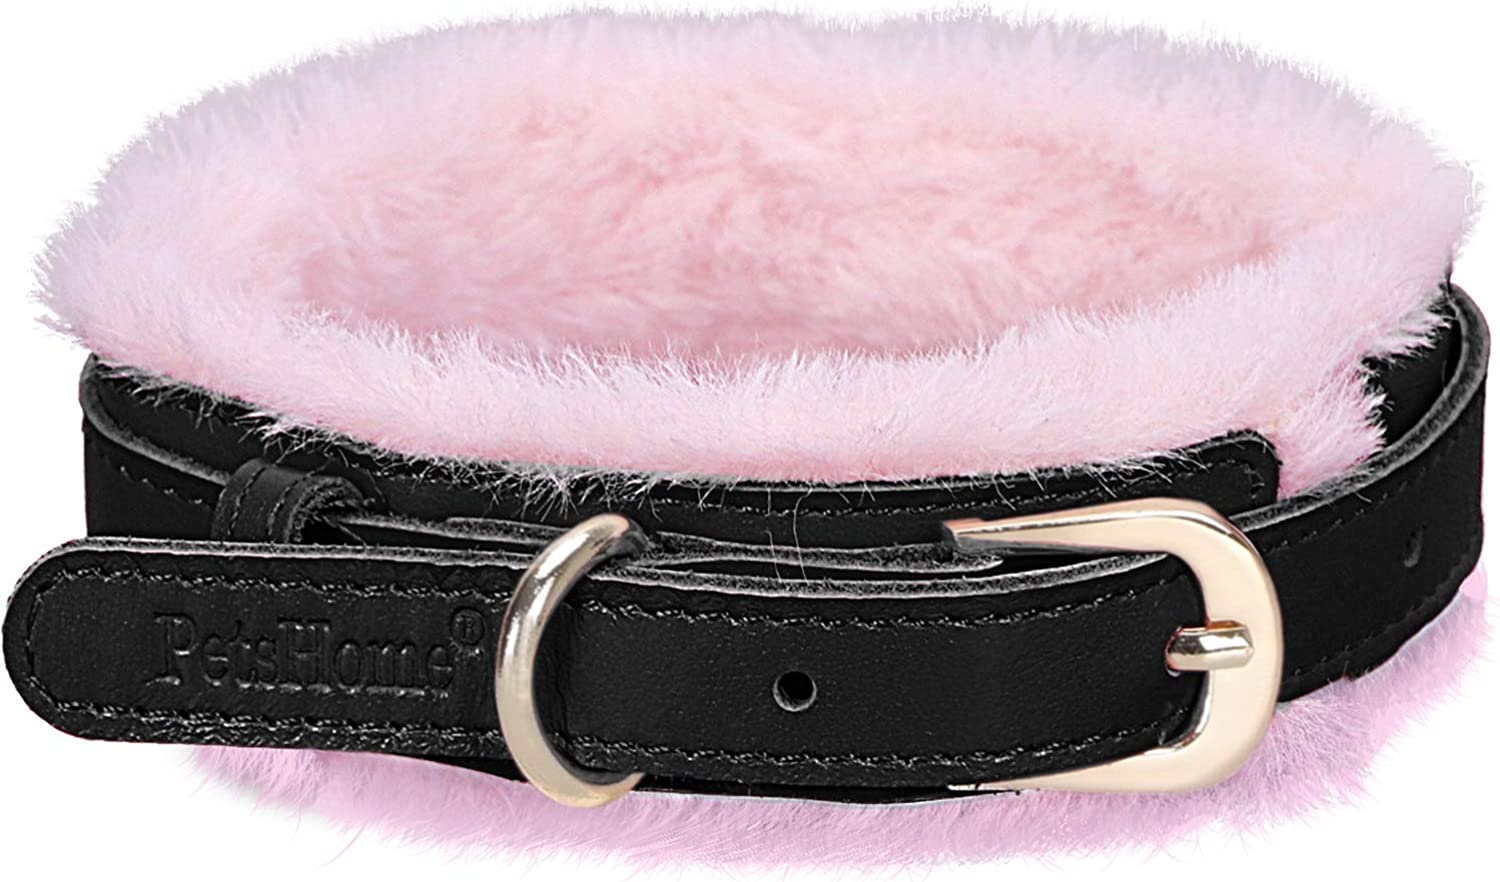 PetsHome Dog Collar, Cat Collar, [Genuine Leather][Soft Fur] Adjustable Collars for Small Dog and Cat Small Black